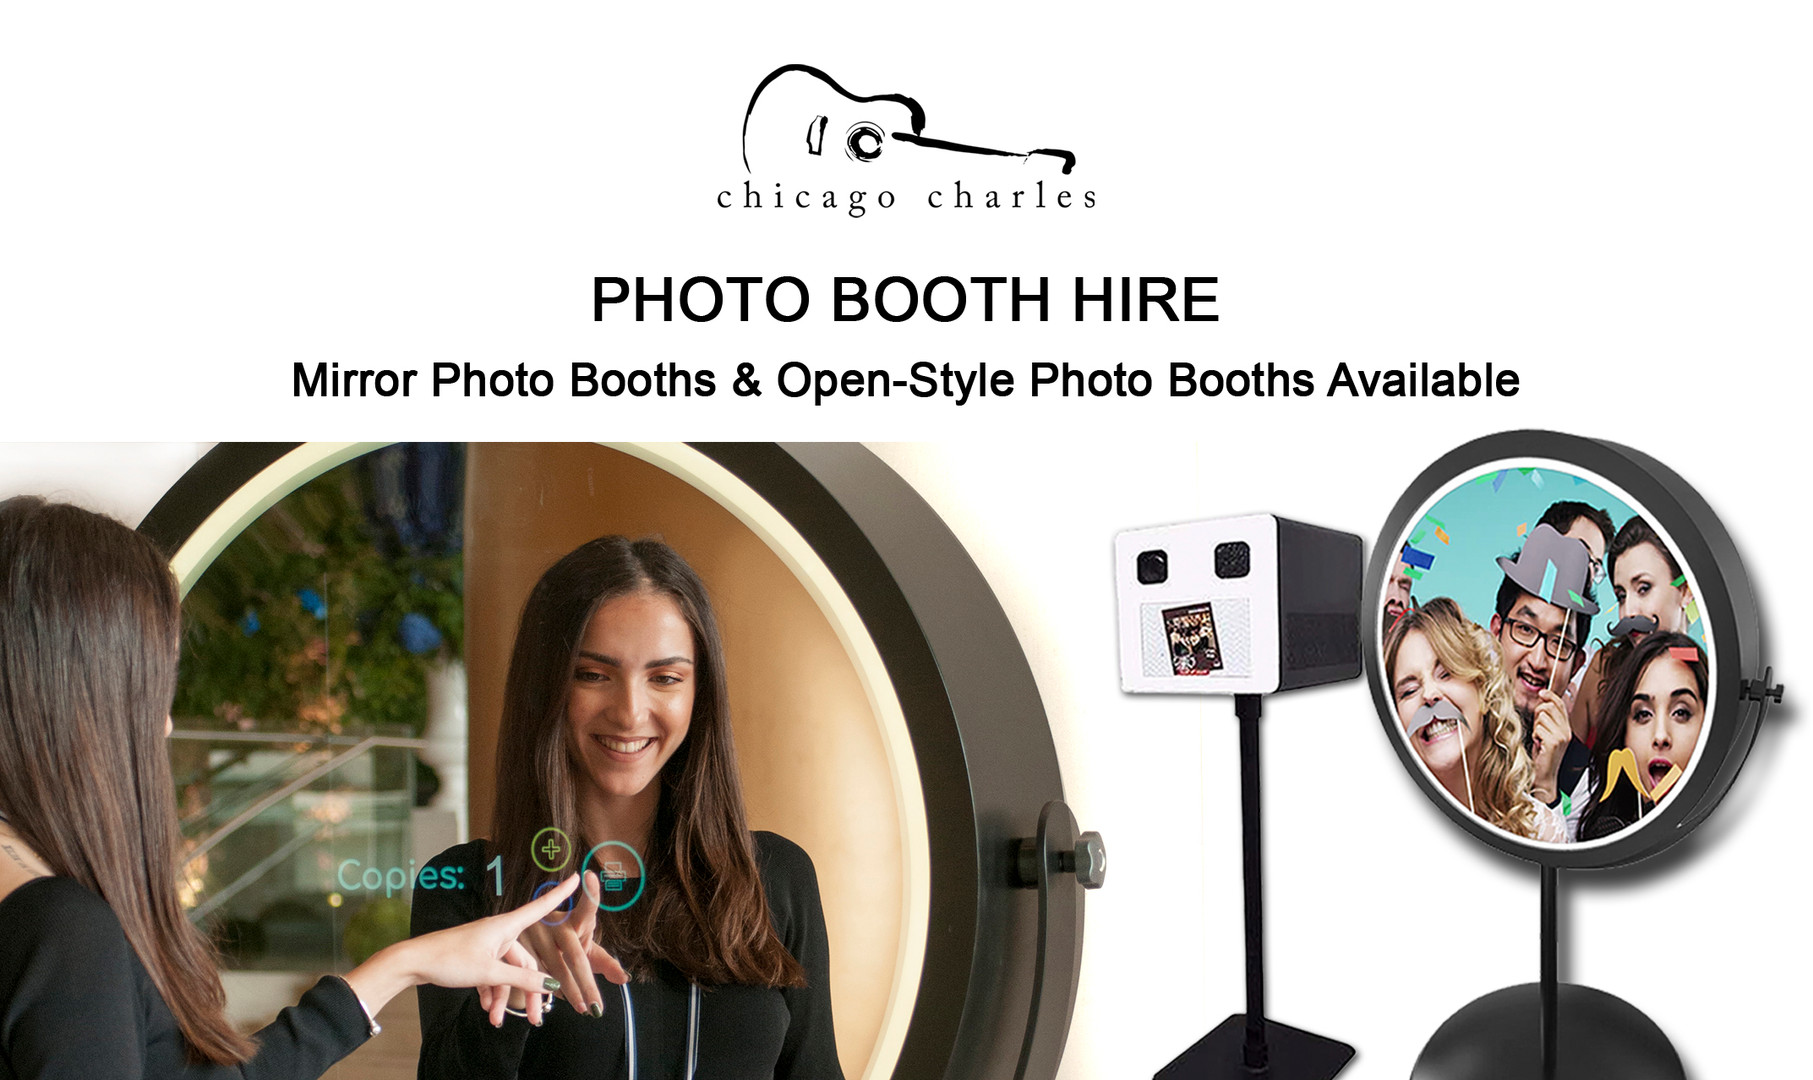 Chicago Charles - Photo Booth Hire